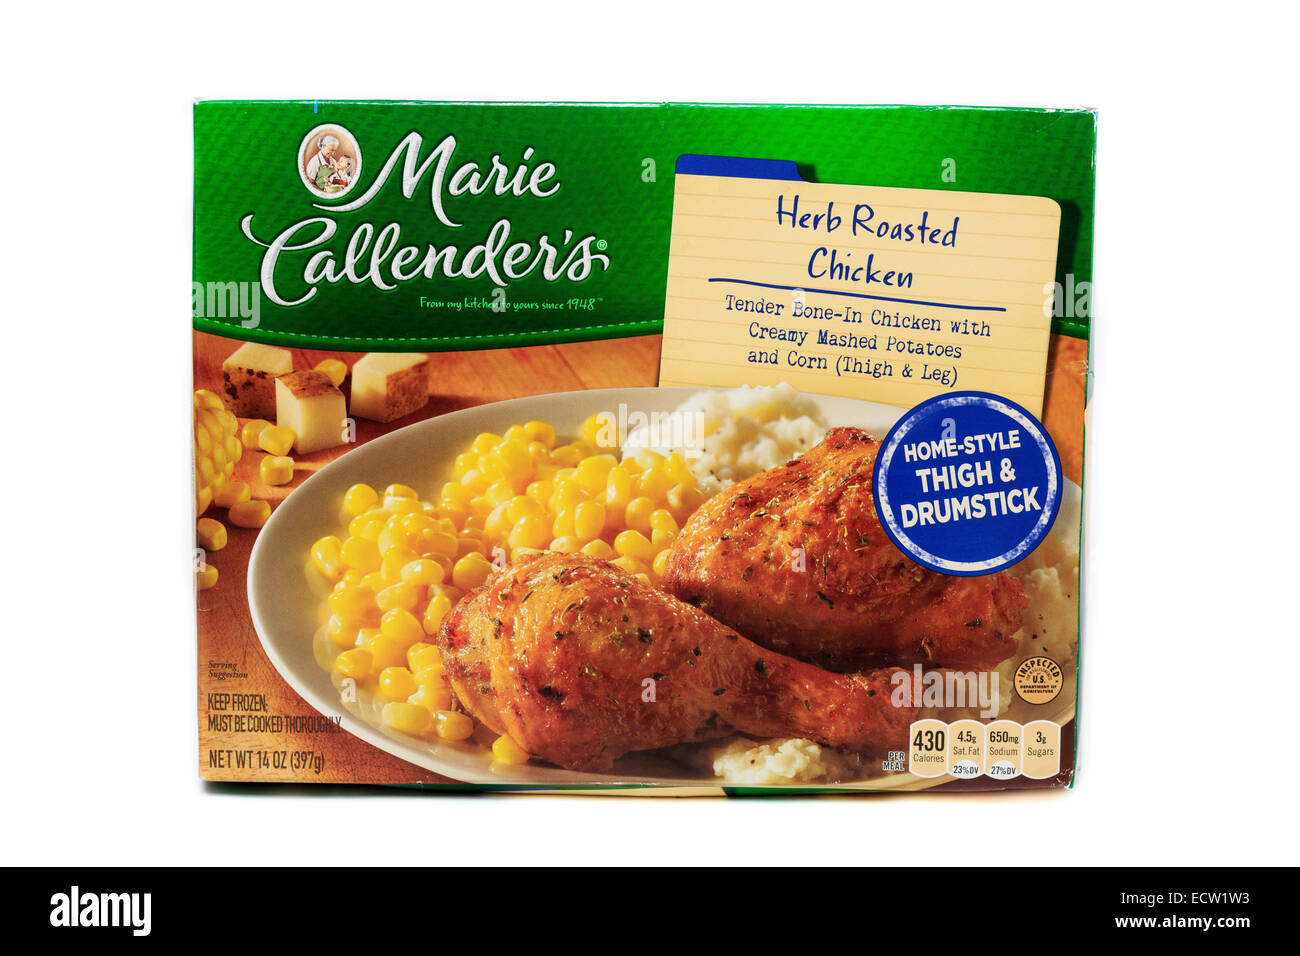 Marie Callender's Herb Roasted Chicken Ready Meal - Stock Image